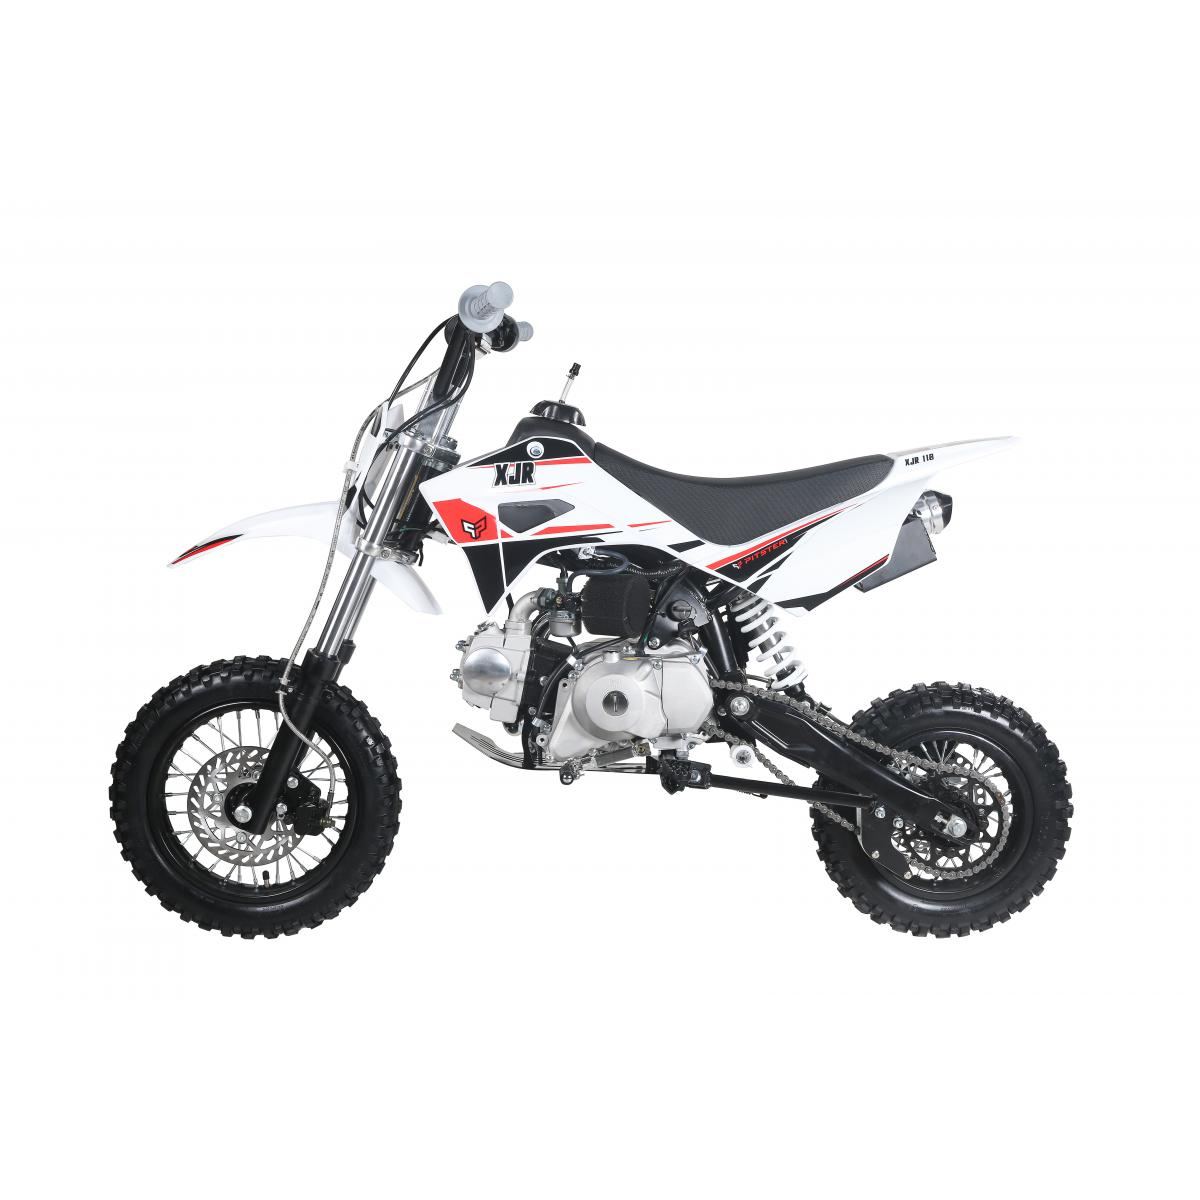 Enjoyable Xjr 110 Crf 50 Ttr 50 Klx 110 Crf 70 Pit Bike Spiritservingveterans Wood Chair Design Ideas Spiritservingveteransorg